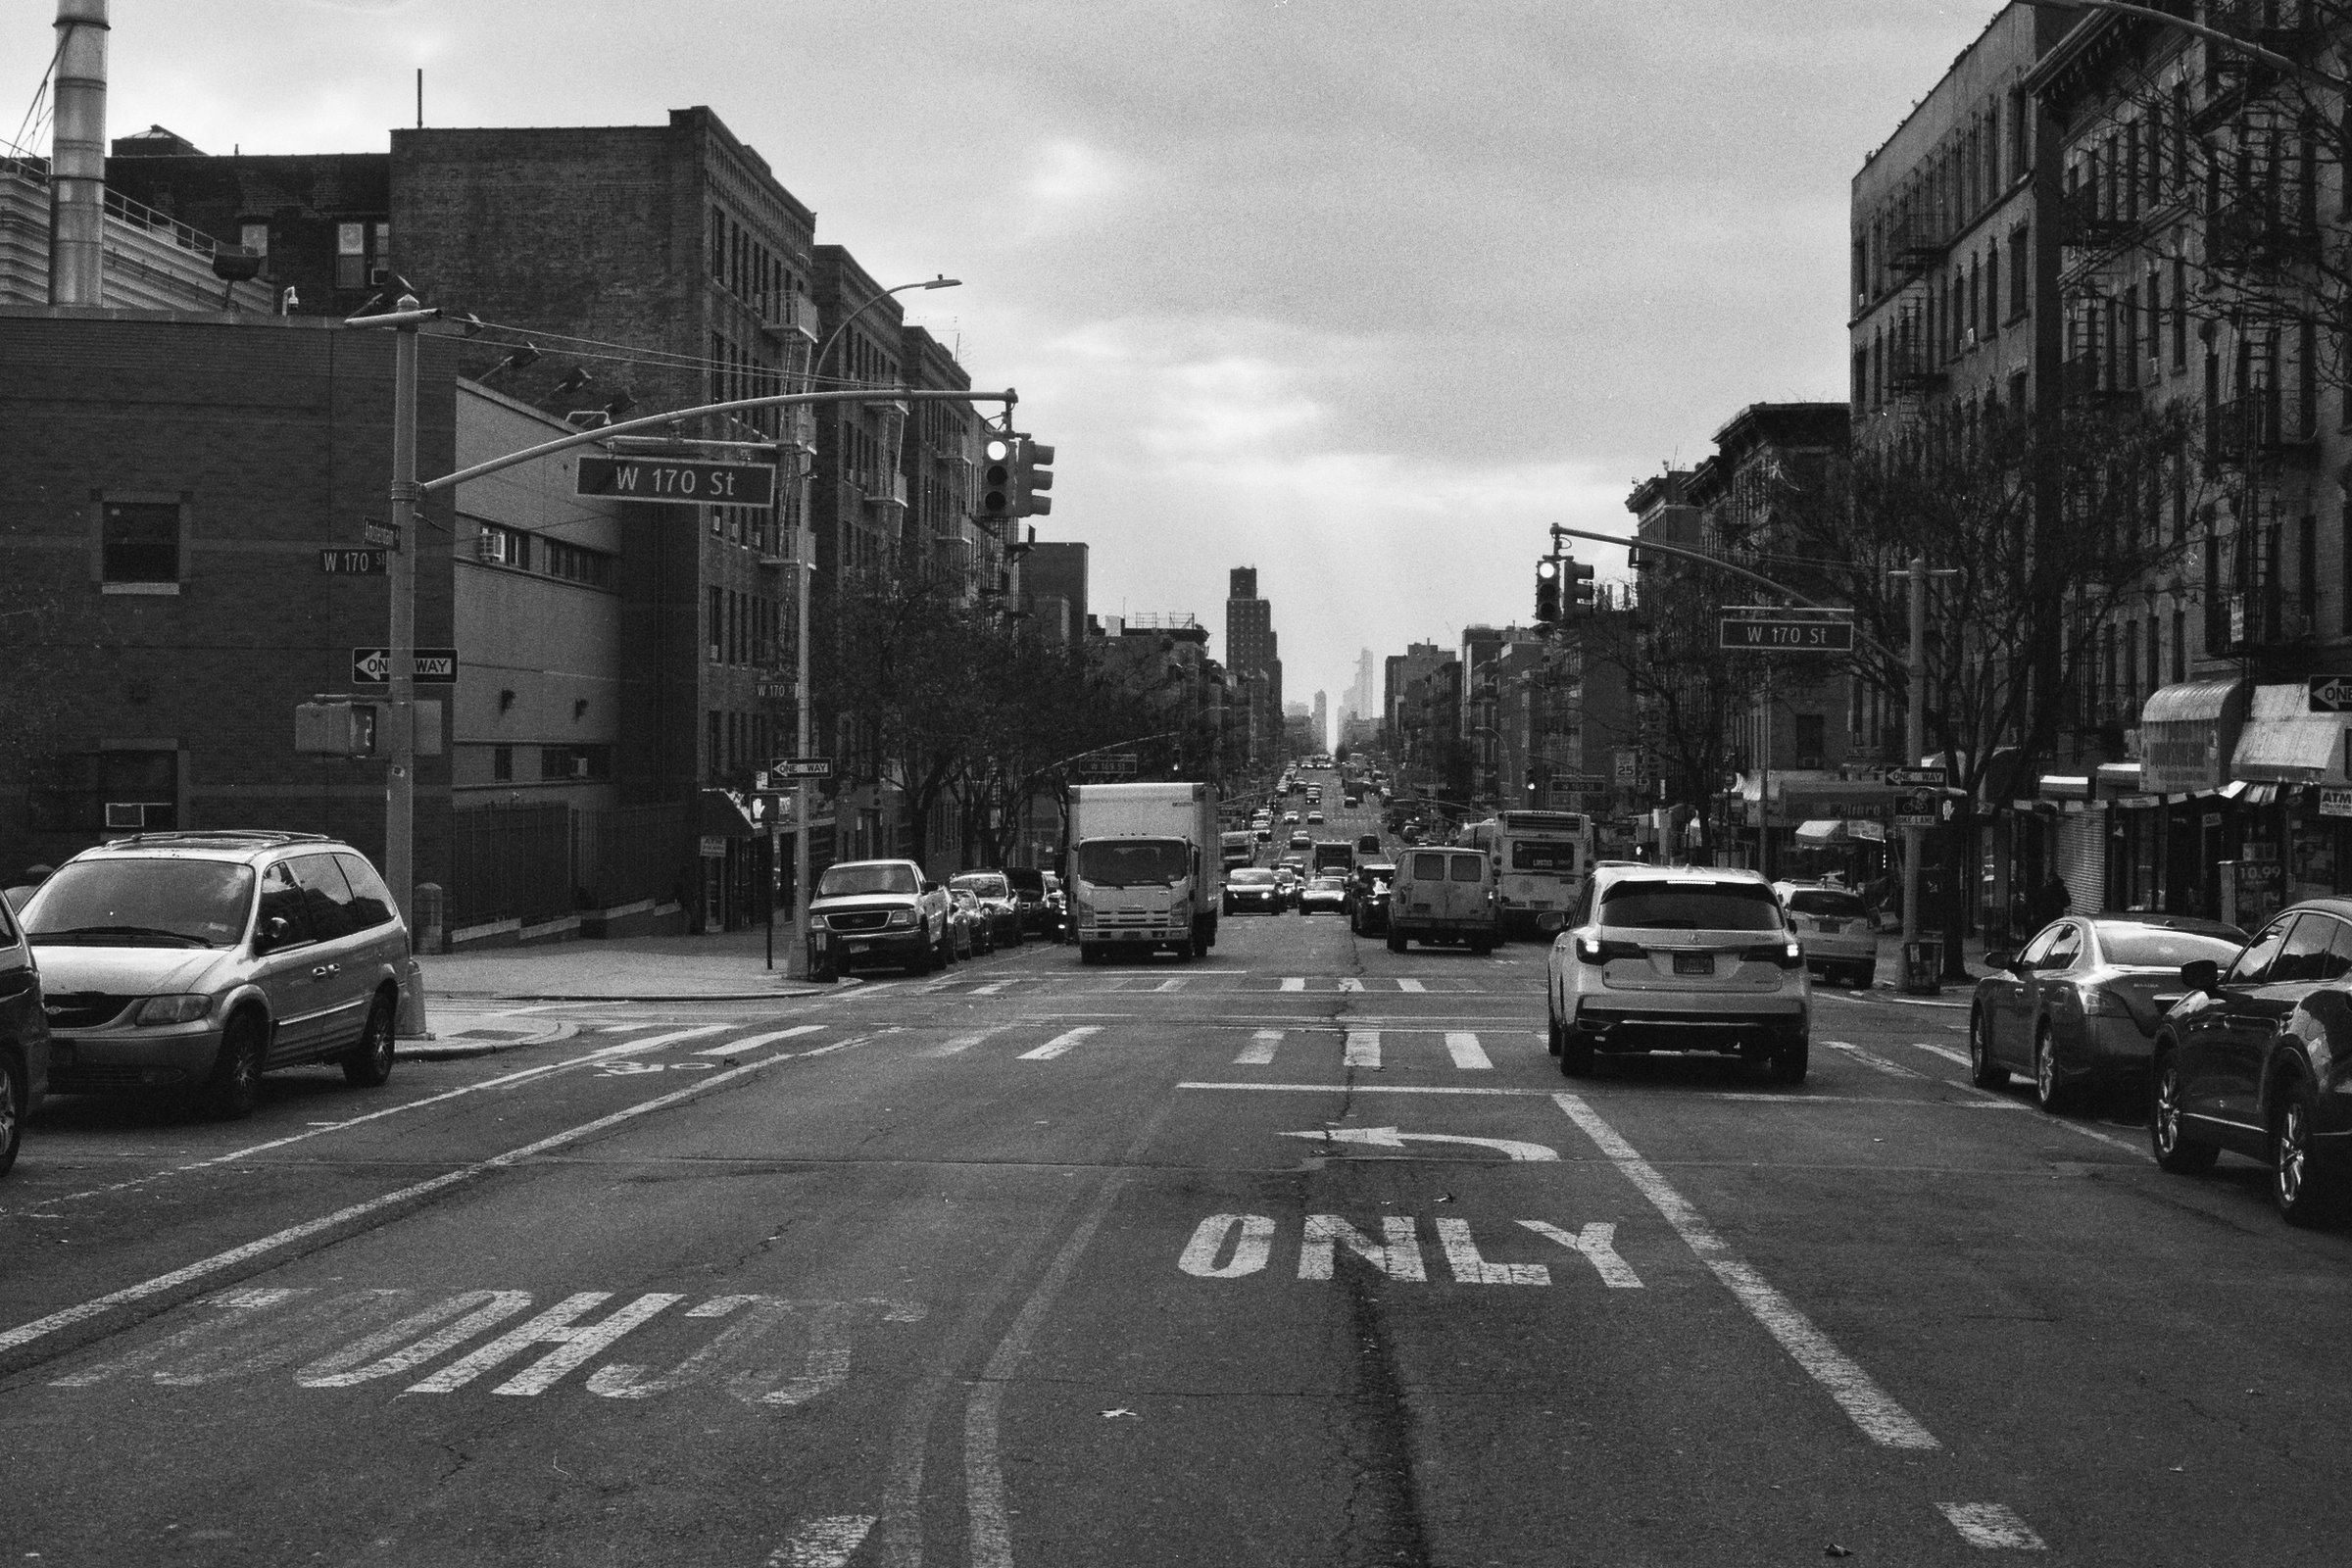 170th and Amsterdam in Washington Heights, looking south.  Details :    film, 35mm Ilford Delta 400. Pentax K1000. Fletcher Berryman, 2018.